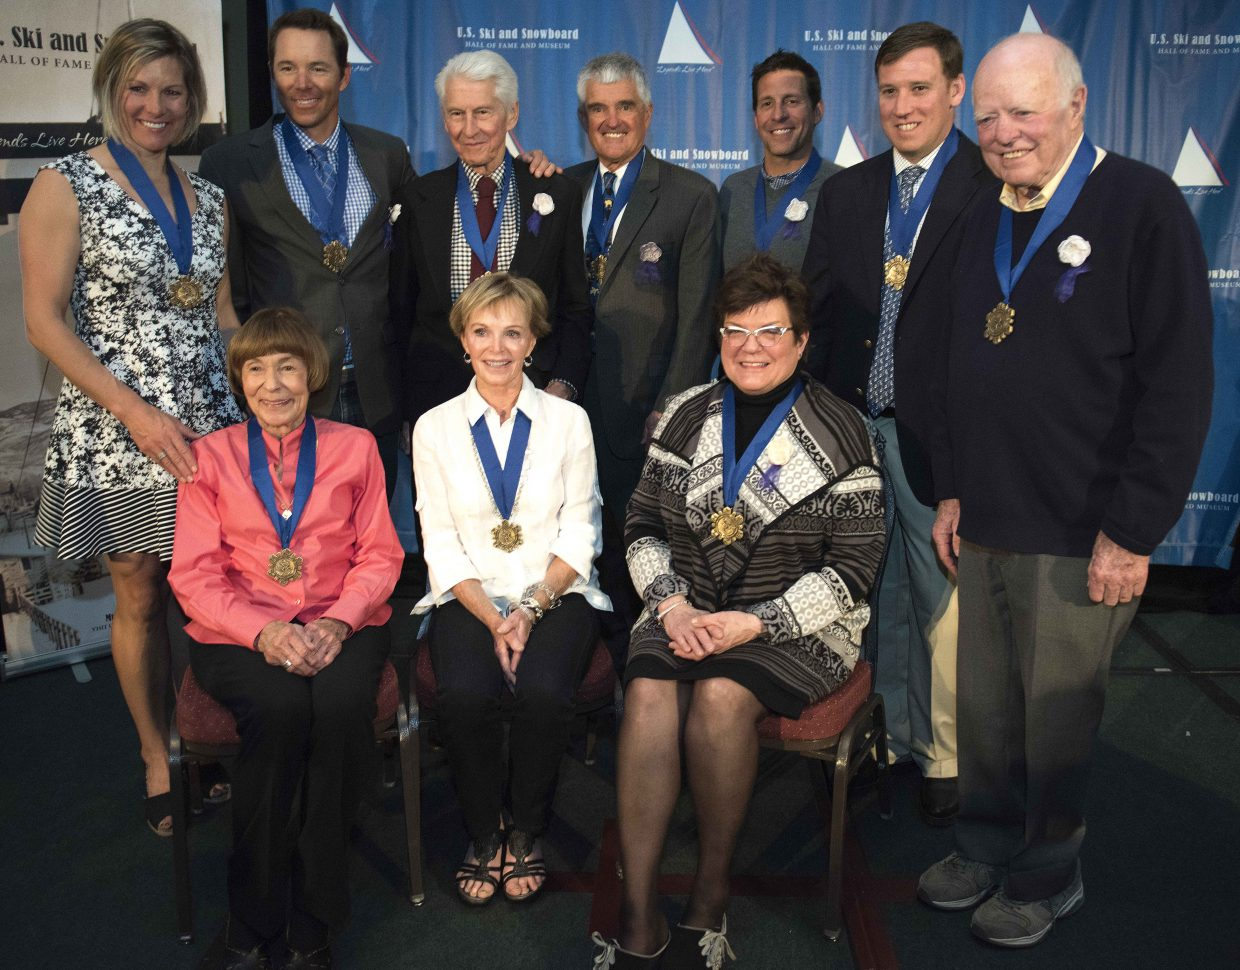 A class of 10 skiers and snowboarders were inducted into the U.S. Ski Hall of Fame on Saturday night in Steamboat Springs. Top, from left: Slalom skiing standout Kristina Koznick, big mountain legend Chris Davenport, skiing Renaissance man Ralph Miller, U.S. coach and development guru John McMurtry, elite alpine racer Erik Schlopy, Olympic gold medalist snowboarder Ross Powers and ski area design master Joe Cushing. Front row, from left: Betsy Chase, wife of ski instructing pioneer Curt Chase, Jean Smith, wife of goggle inventor Bob Smith, and women's ski equipment pioneer Jeannie Thoren.